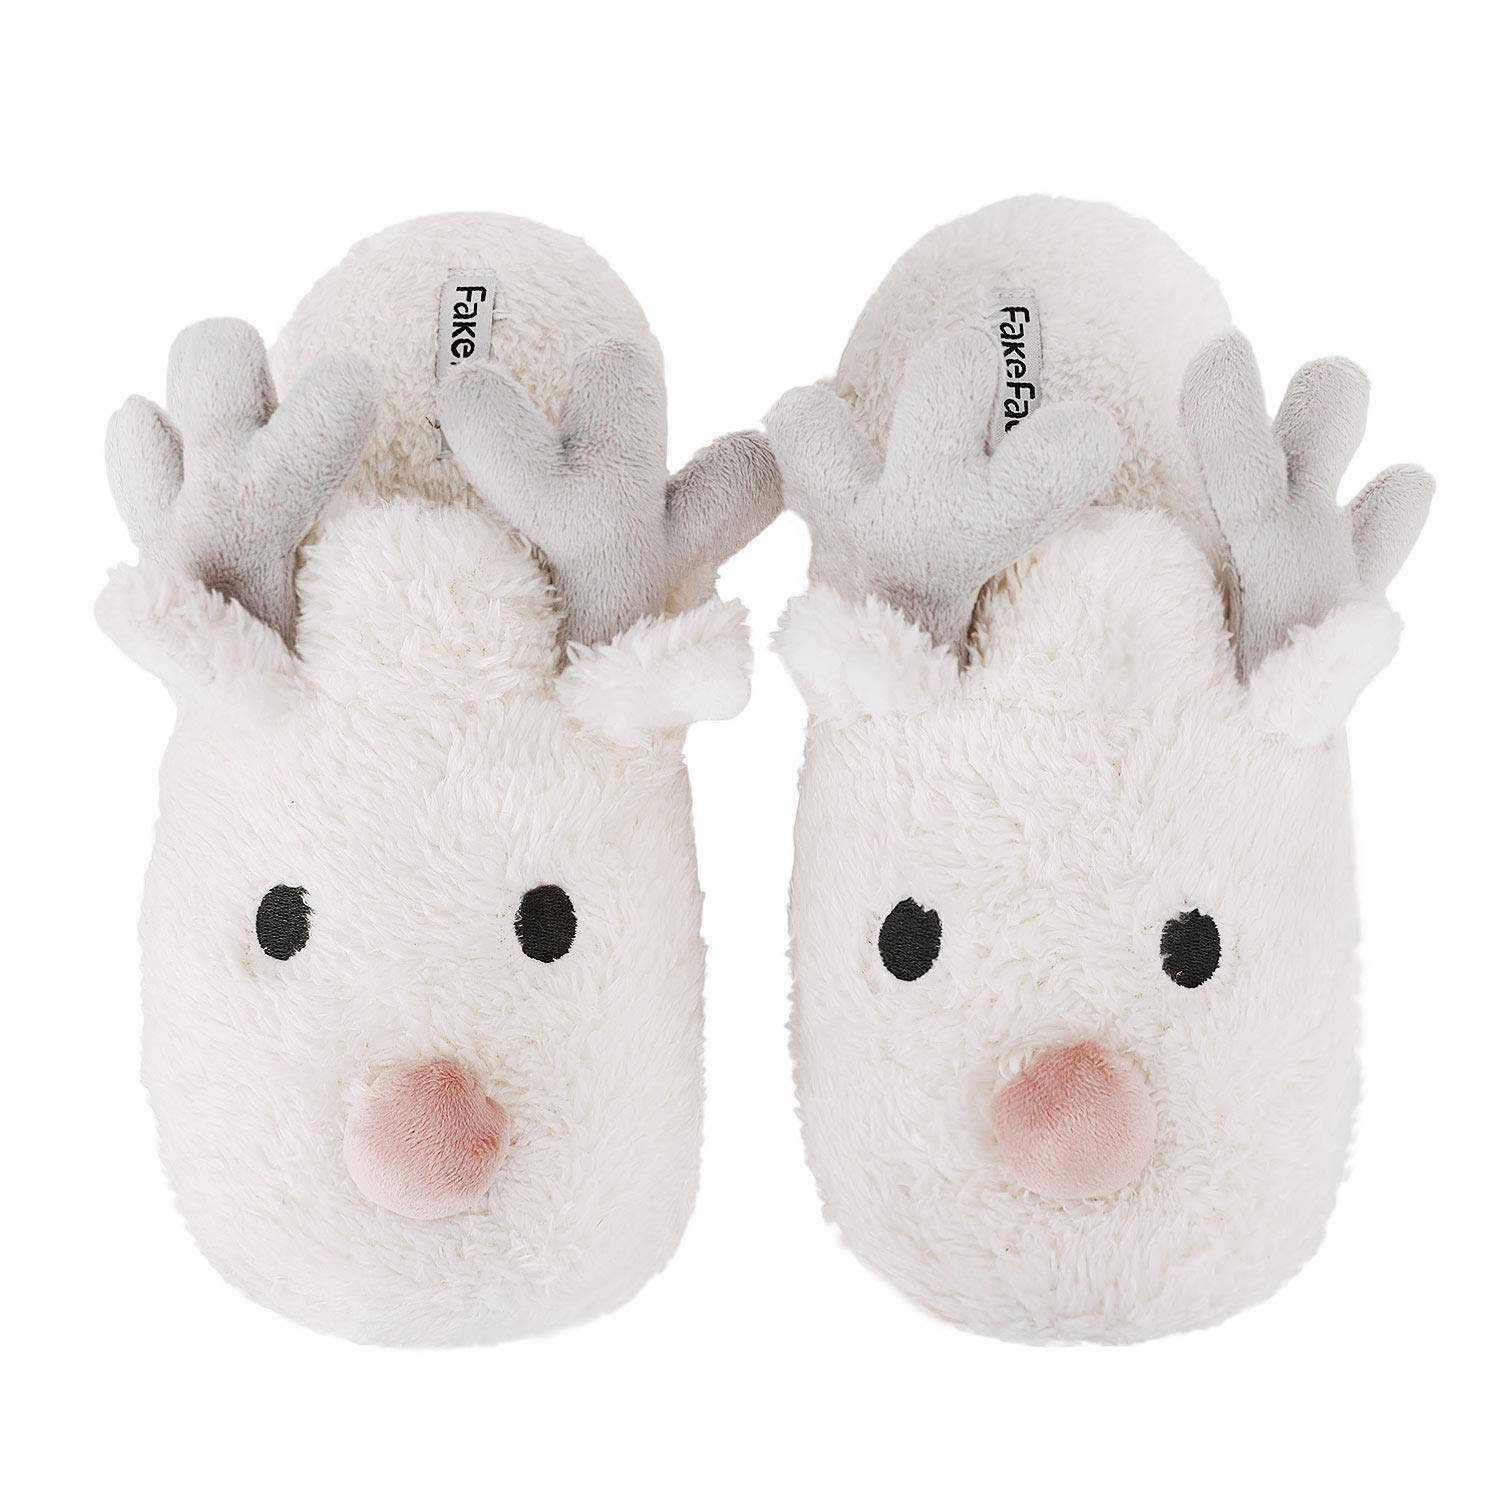 Tremendous Womens Cartoon Indoor Warm Fleece Slippers Winter Soft Cozy Home Booties Non Slip Plush Slip On Shoes Ankle Boots Interior Design Ideas Gresisoteloinfo